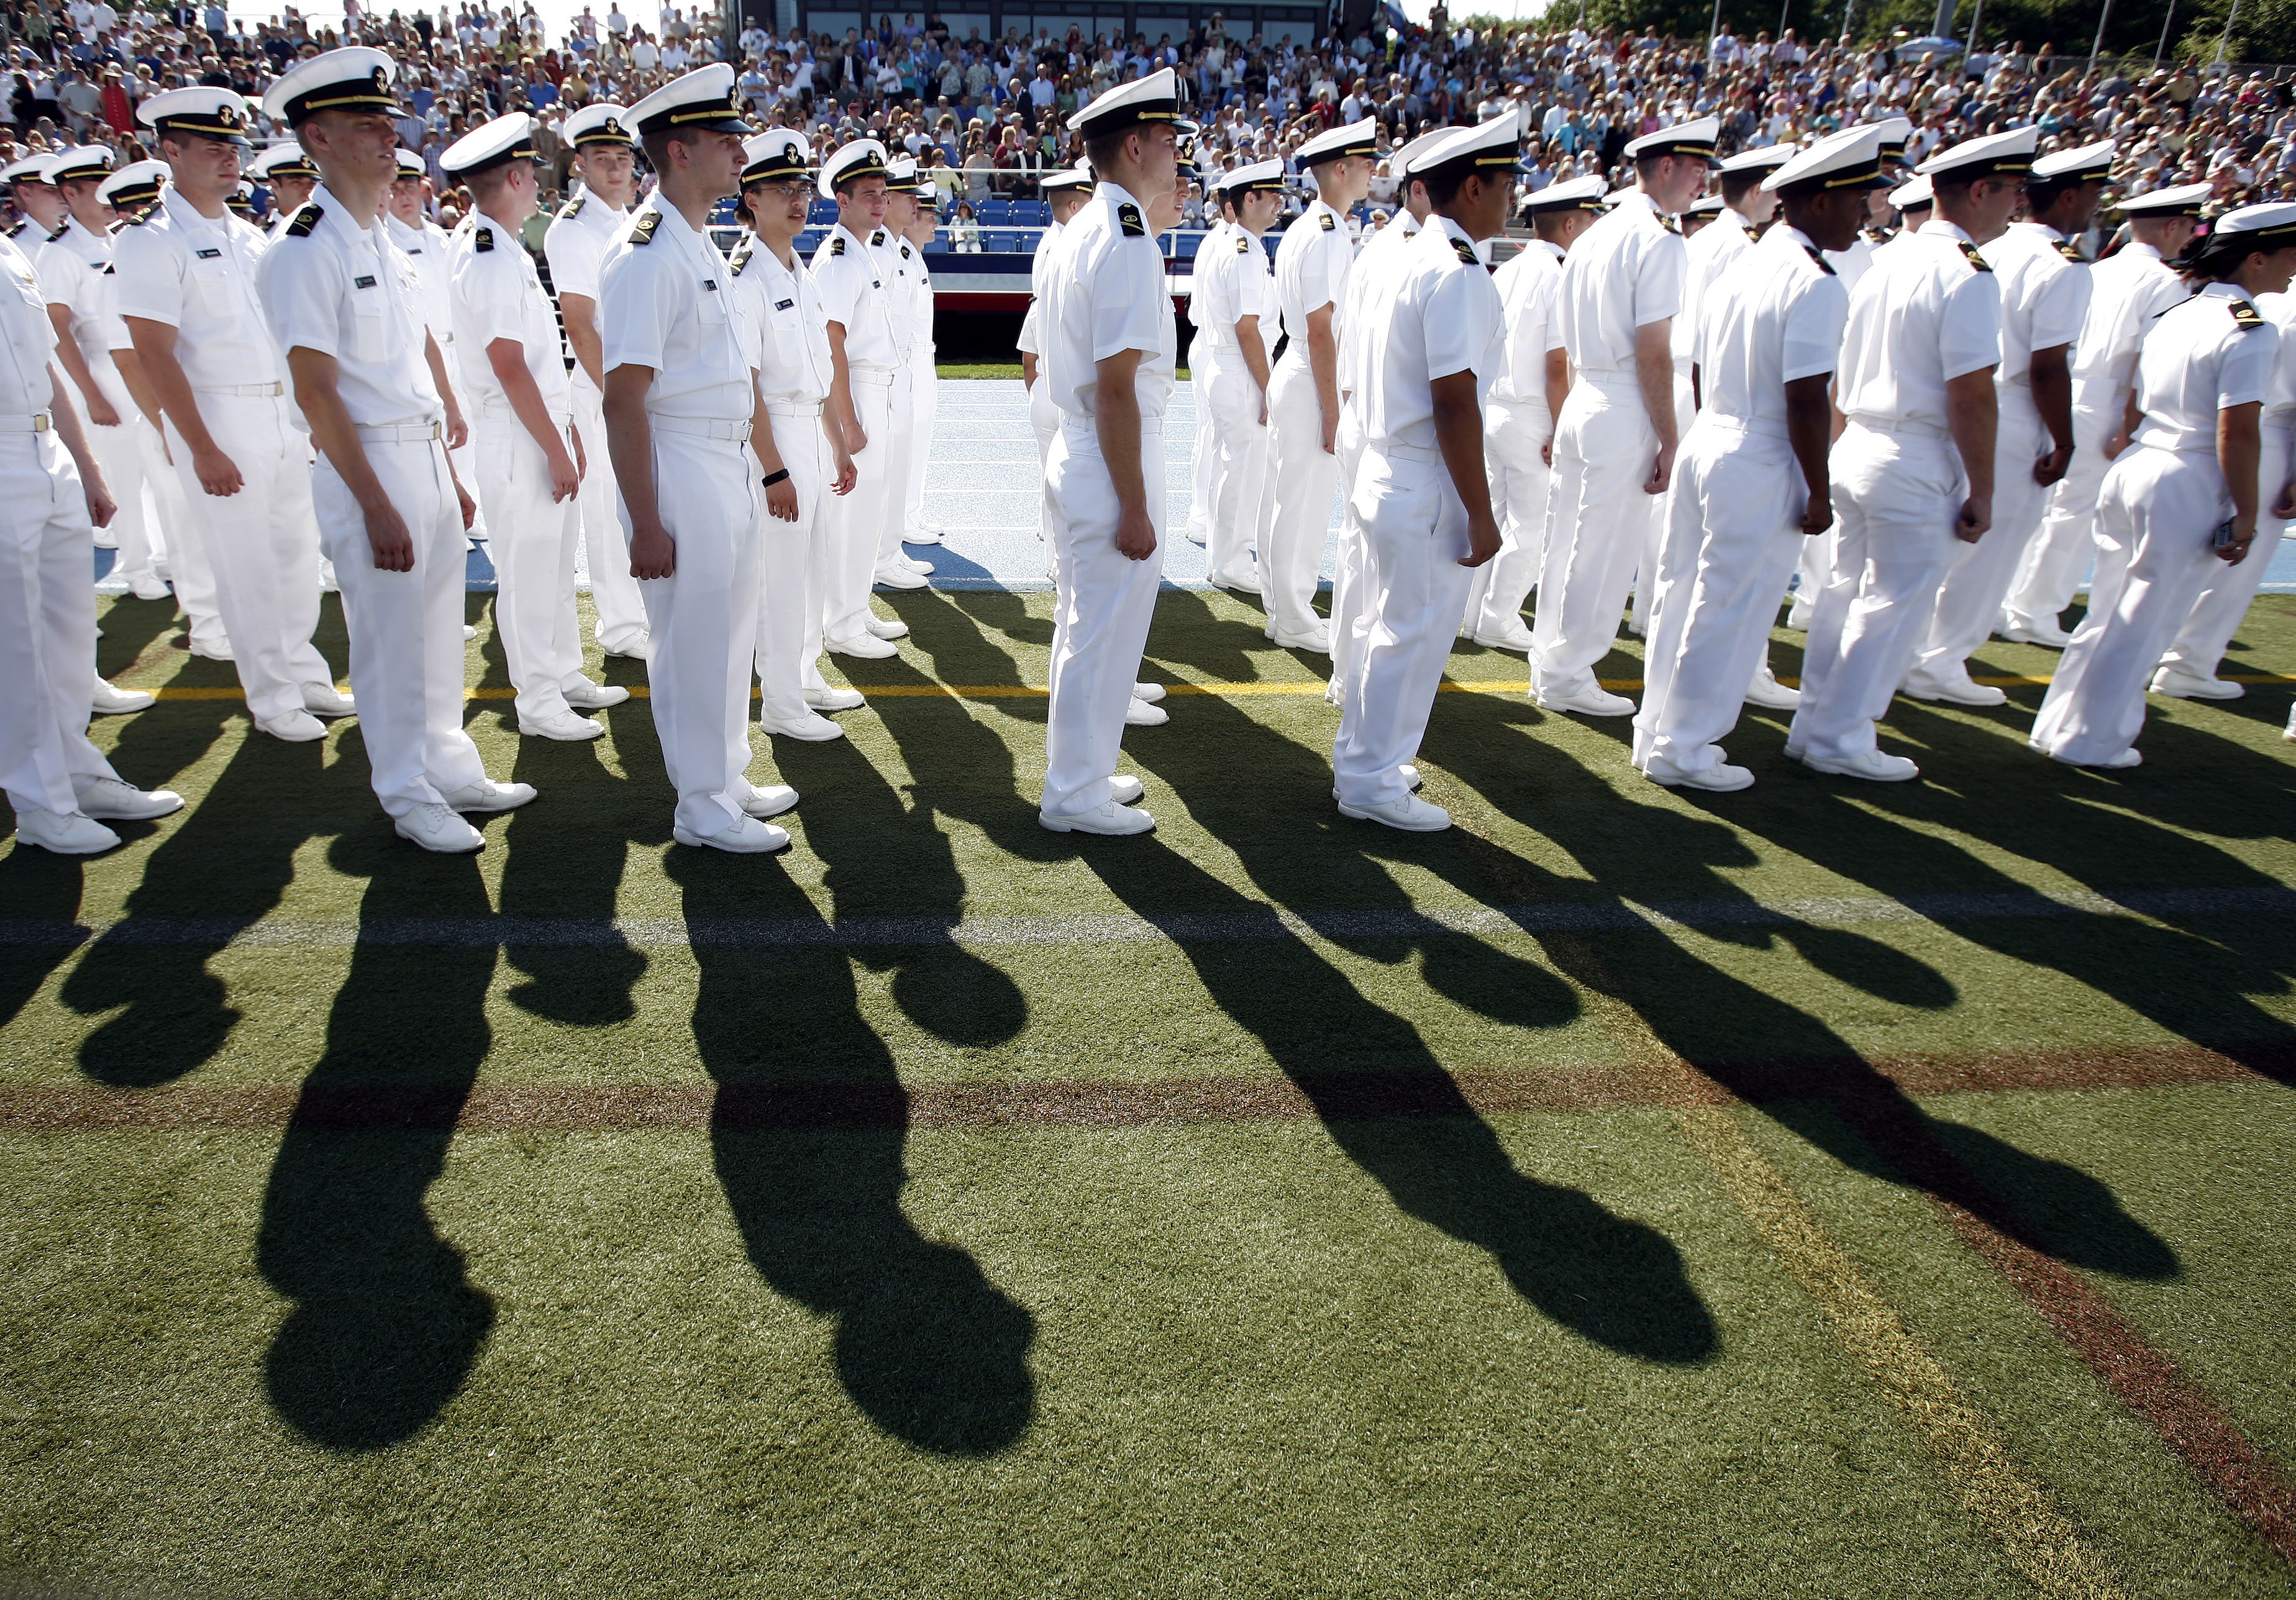 Midshipmen stand at attention as the 2007 graduating class of the United States Merchant Marine Academy arrivee.    REUTERS/Shannon Stapleton (UNITED STATES)